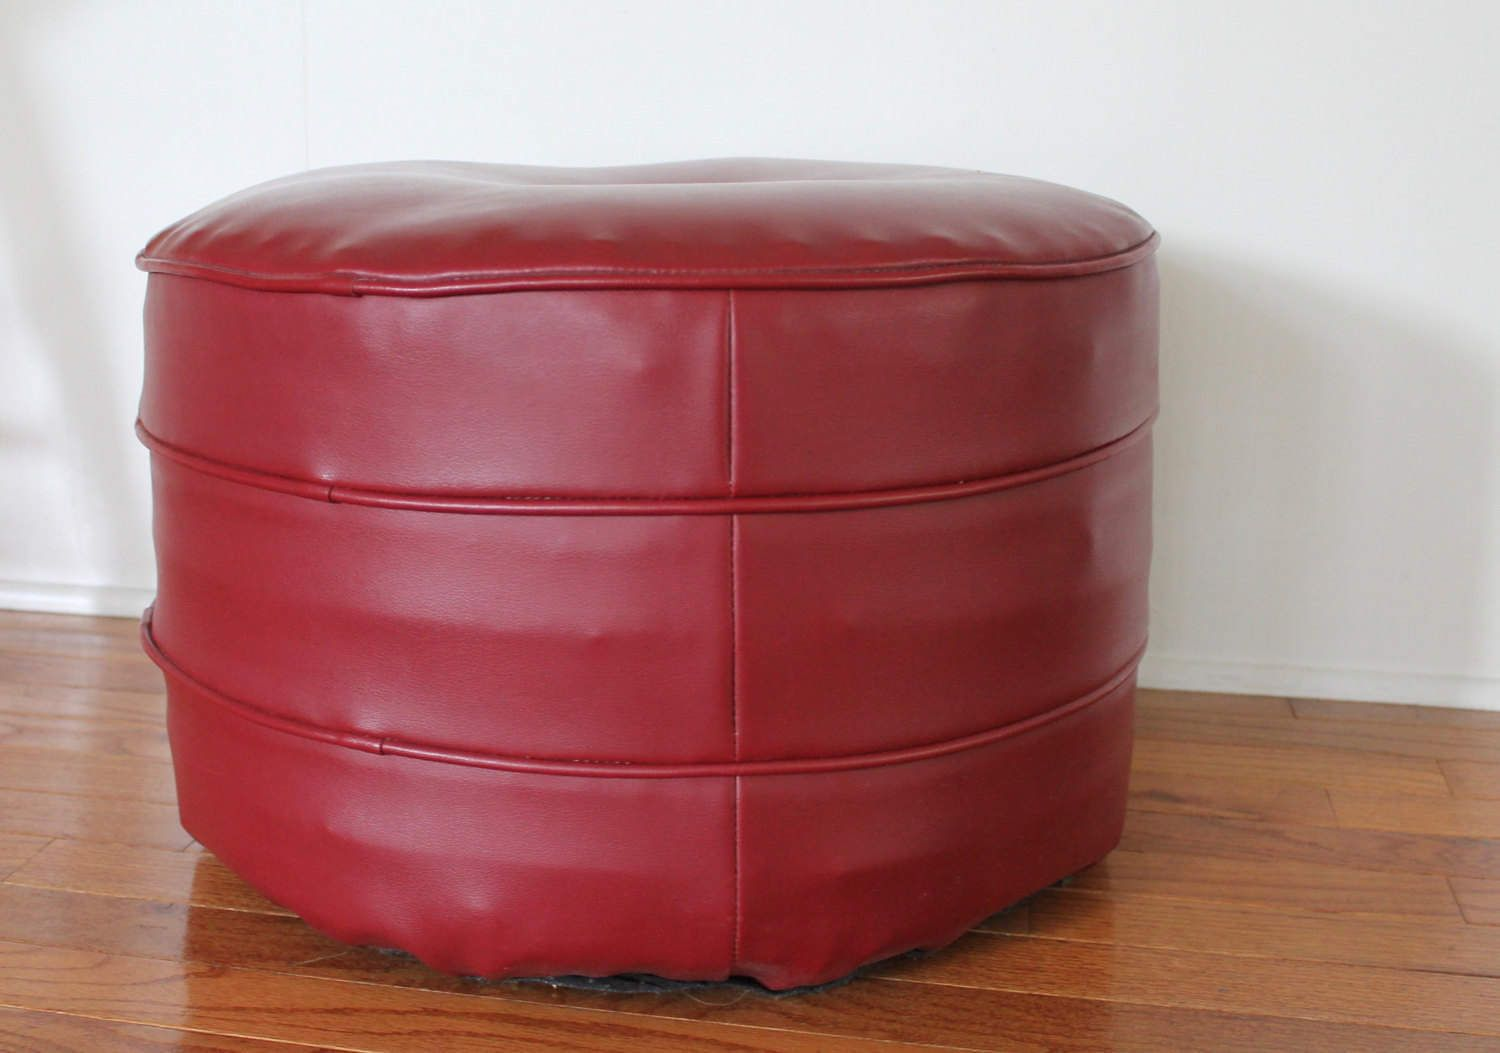 Wondrous Vintage Mid Century Red Faux Leather Round Ottoman Stool Squirreltailoven Fun Painted Chair Ideas Images Squirreltailovenorg